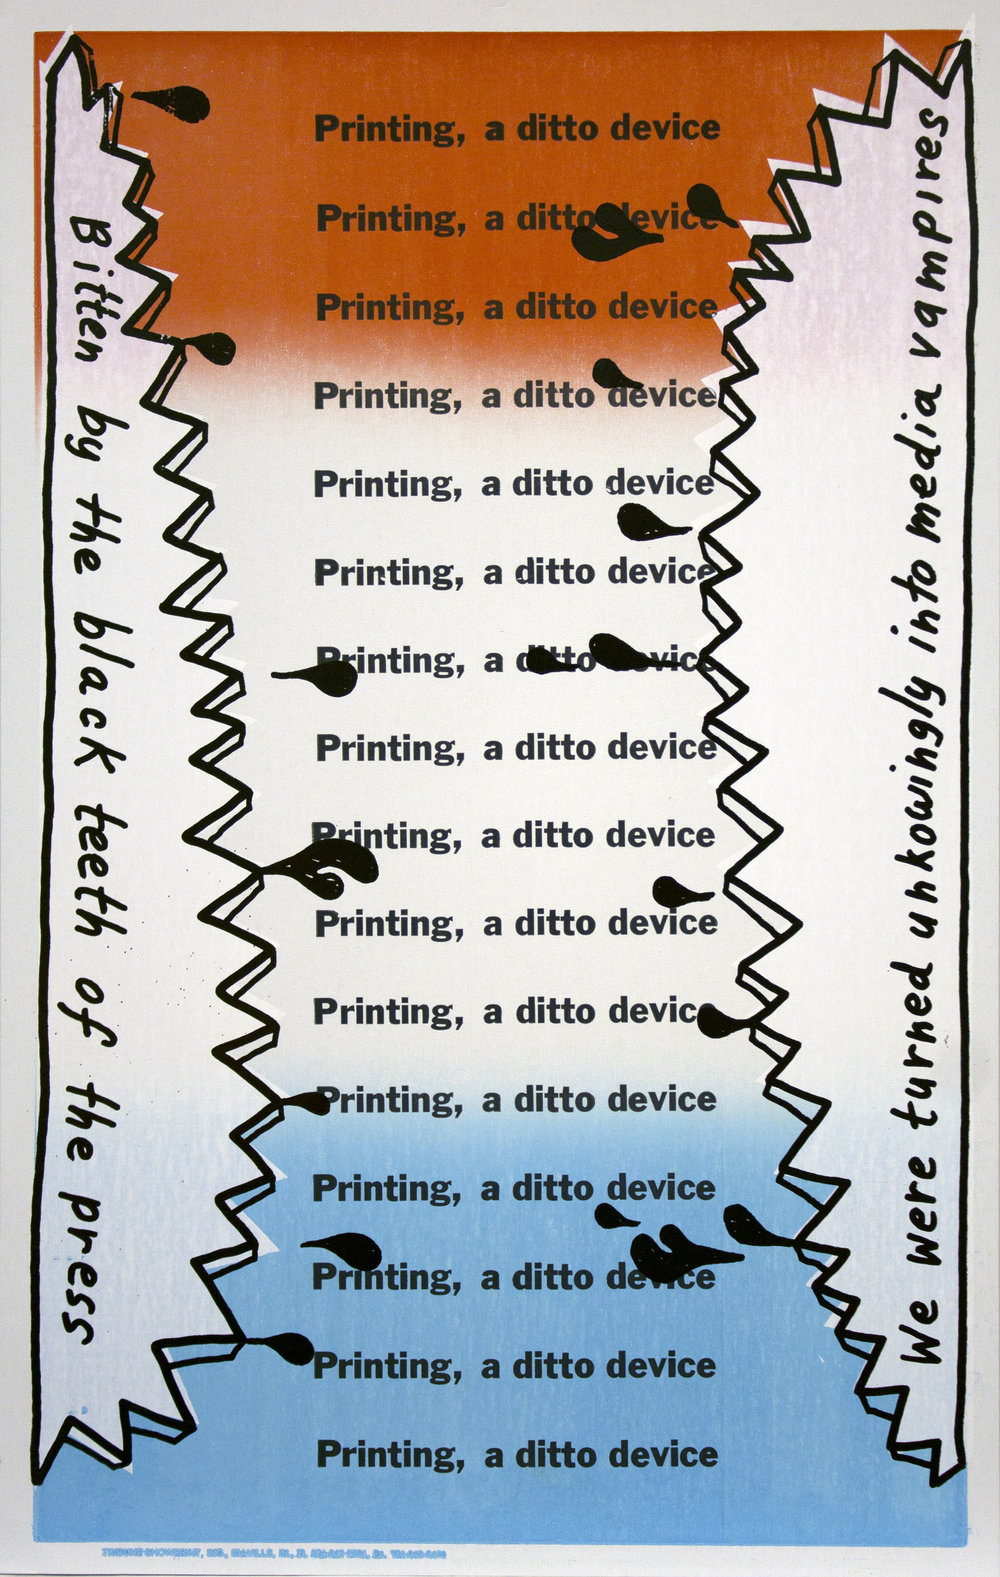 Christopher Michlig and Jan Tumlir,  Twilight (Printing, a ditto device) , 2017. Silkscreen and letterpress on poster board, 14 x 22 inches